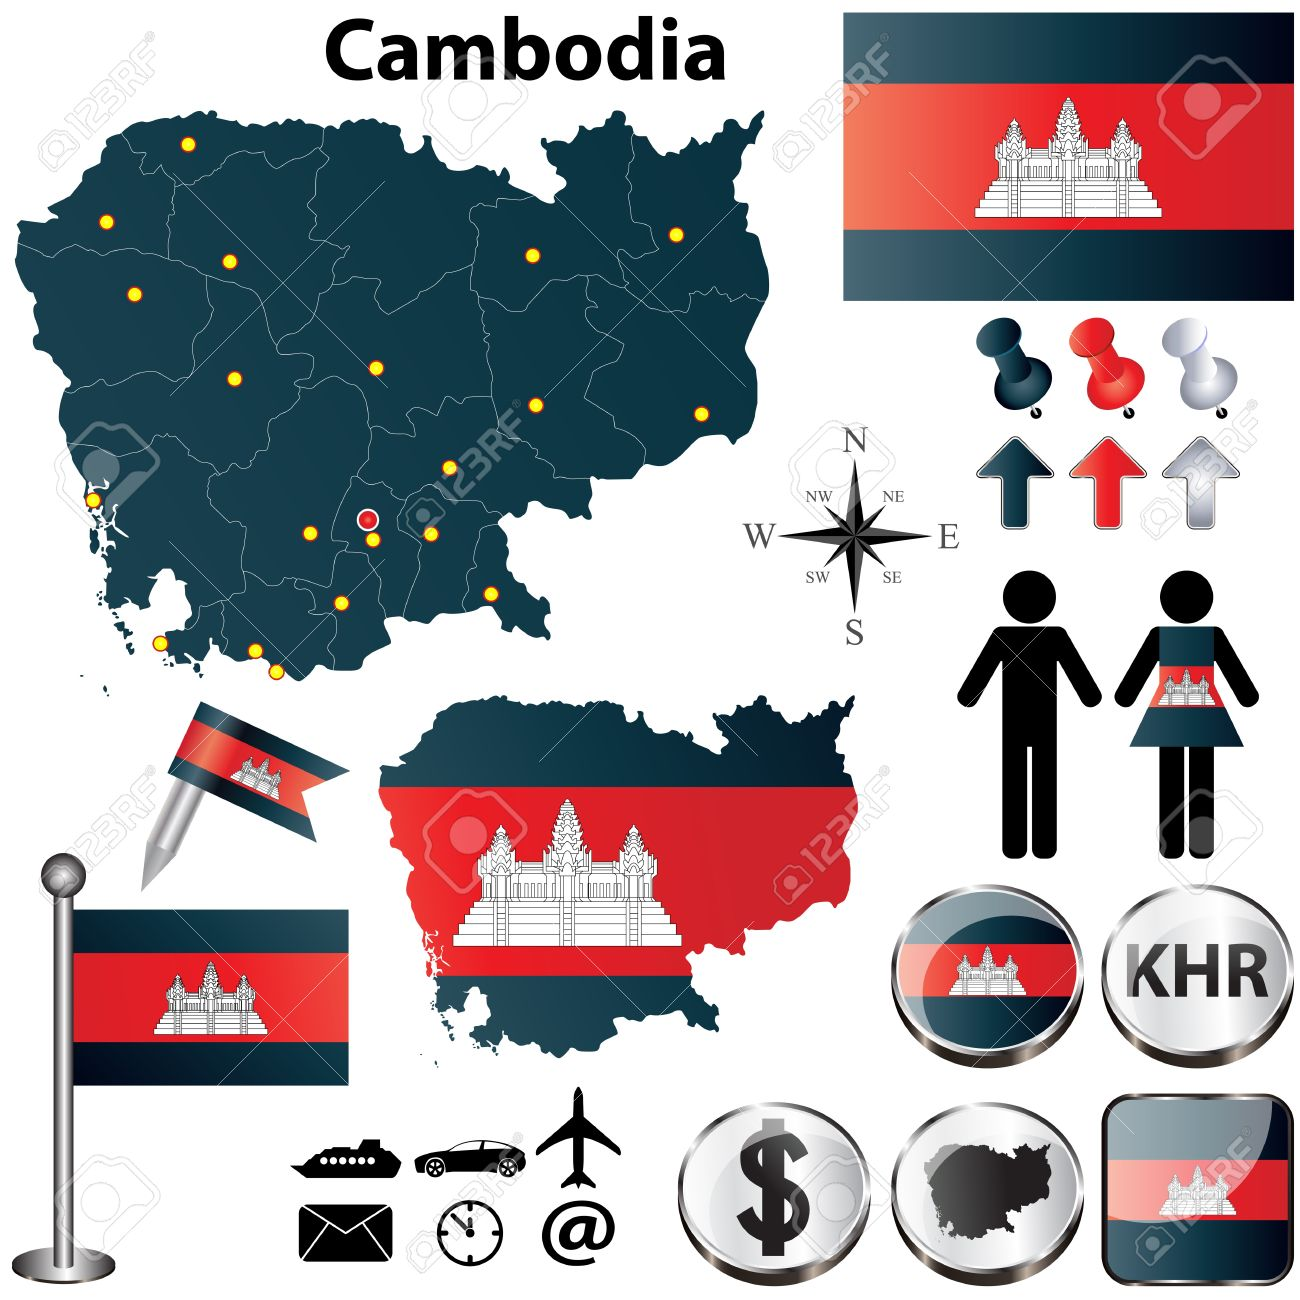 Indochina clipart #7, Download drawings